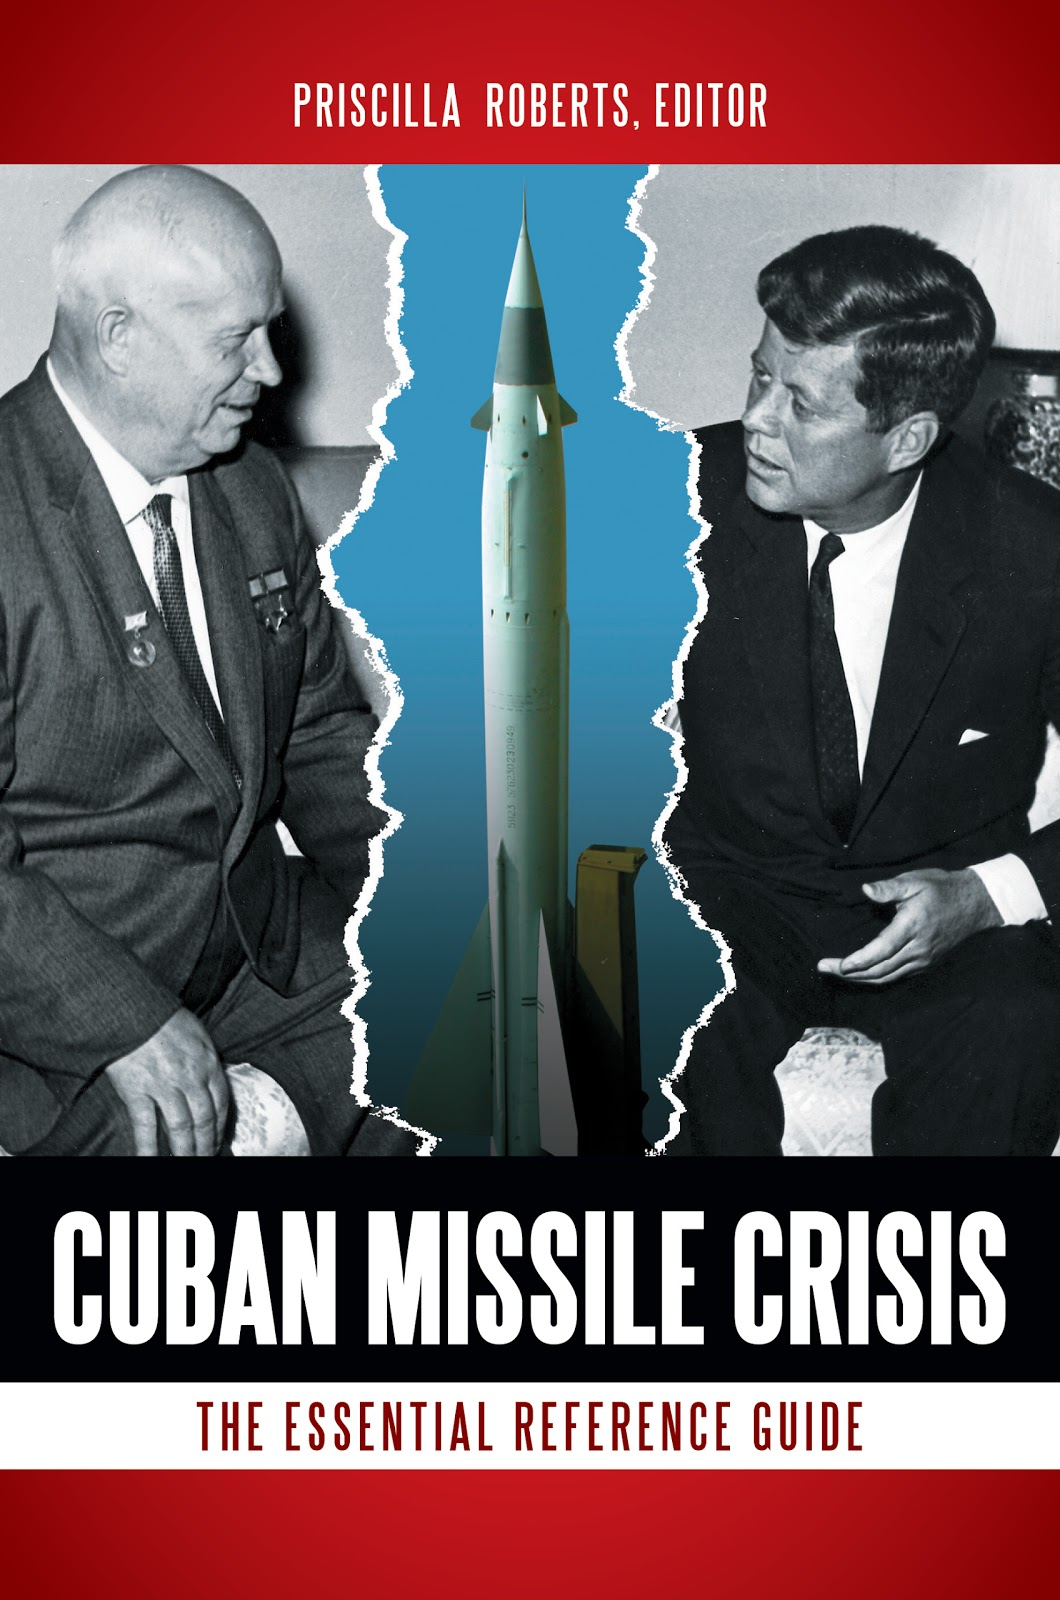 a history of cuban missile crisis Commemorating the 50th anniversary of the crisis, this revised and updated edition of the cuban missile crisis is ideal for undergraduate courses on the 1960s, us foreign policy, the cold war, twentieth-century world history, and comparative foreign policy.